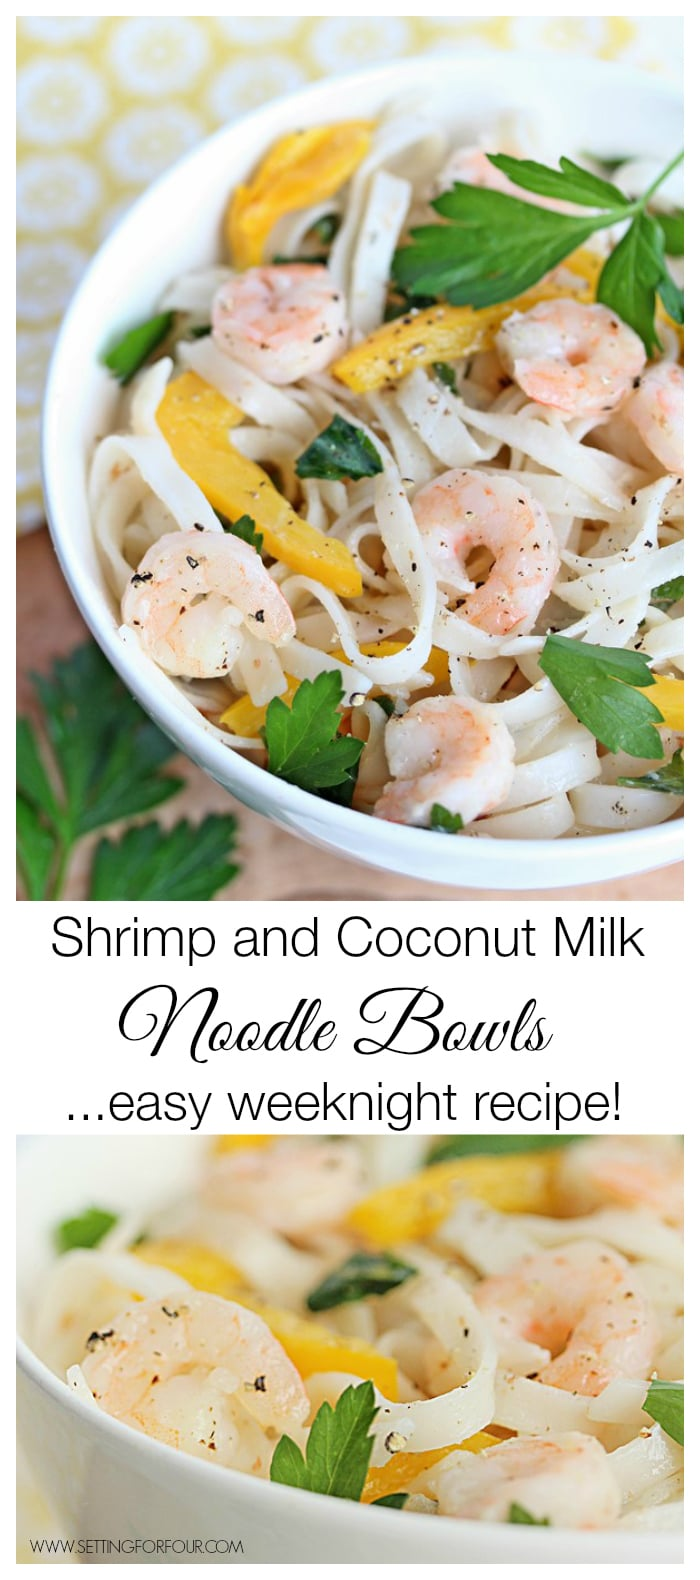 Easy Weeknight Meal Recipe for Delicious Shrimp and Coconut Milk Noodle Bowls! Made in one pan for quick cleanup too! | www.settingforfour.com